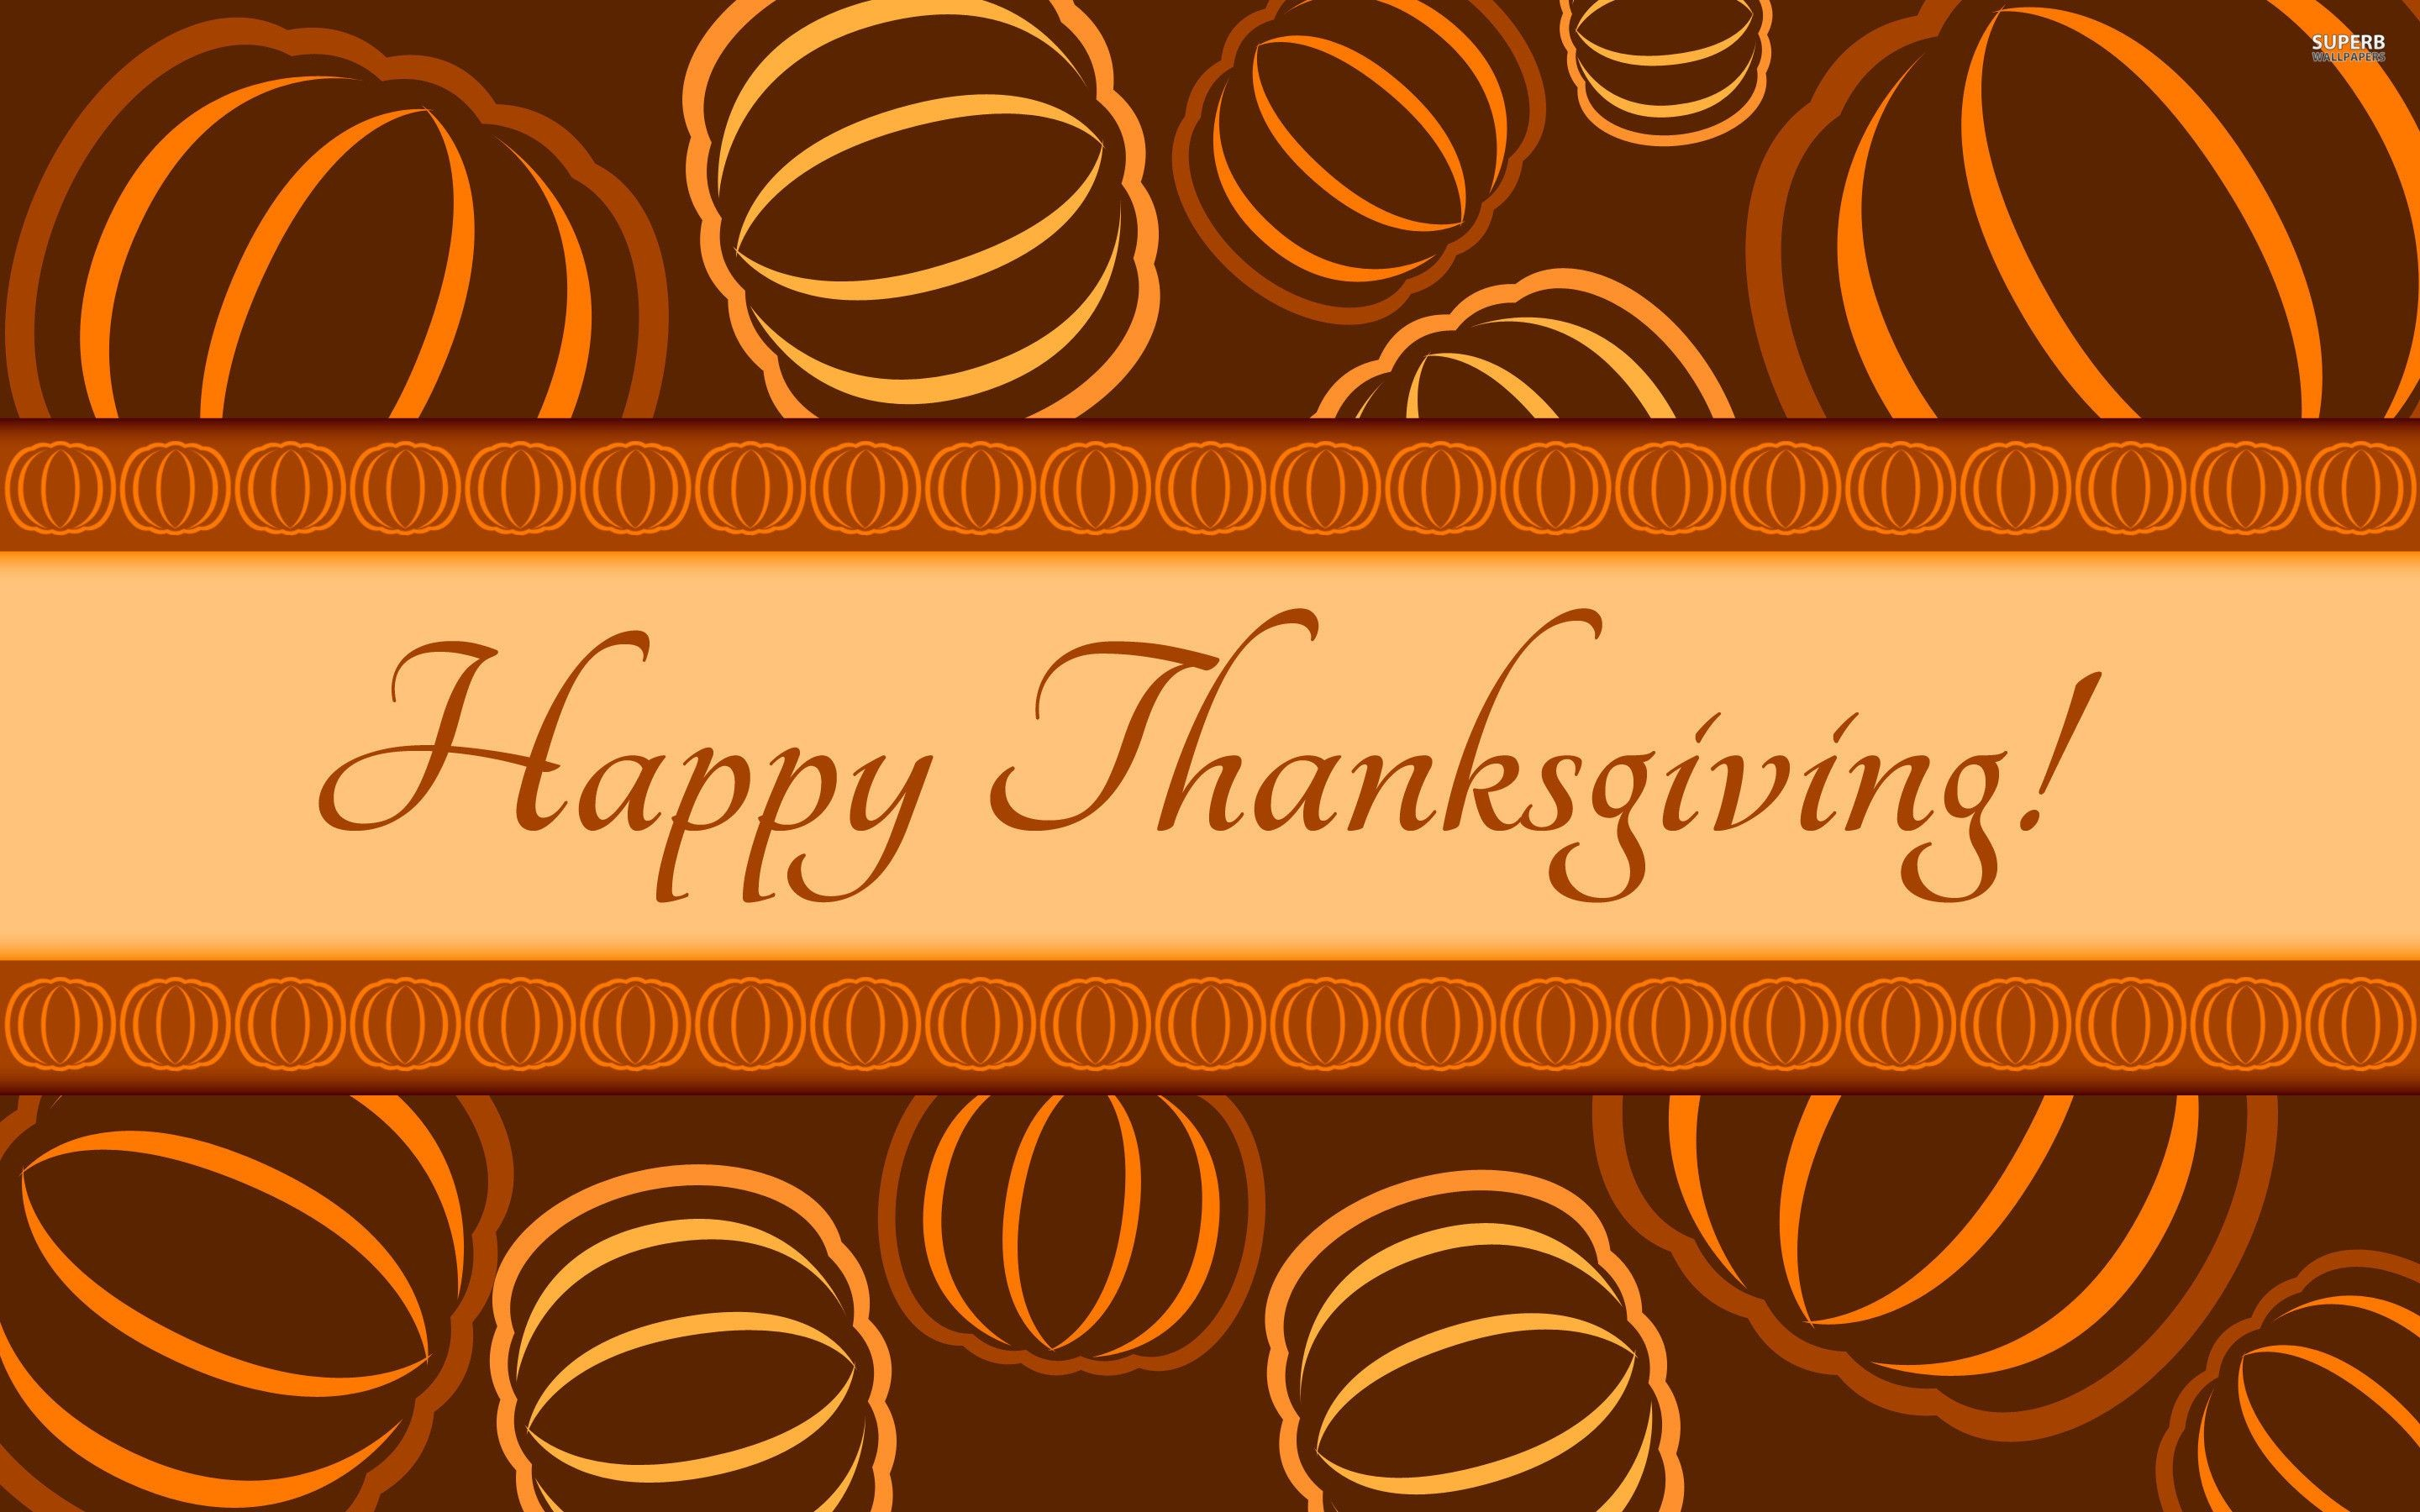 Happy Thanksgiving HD Wallpapers